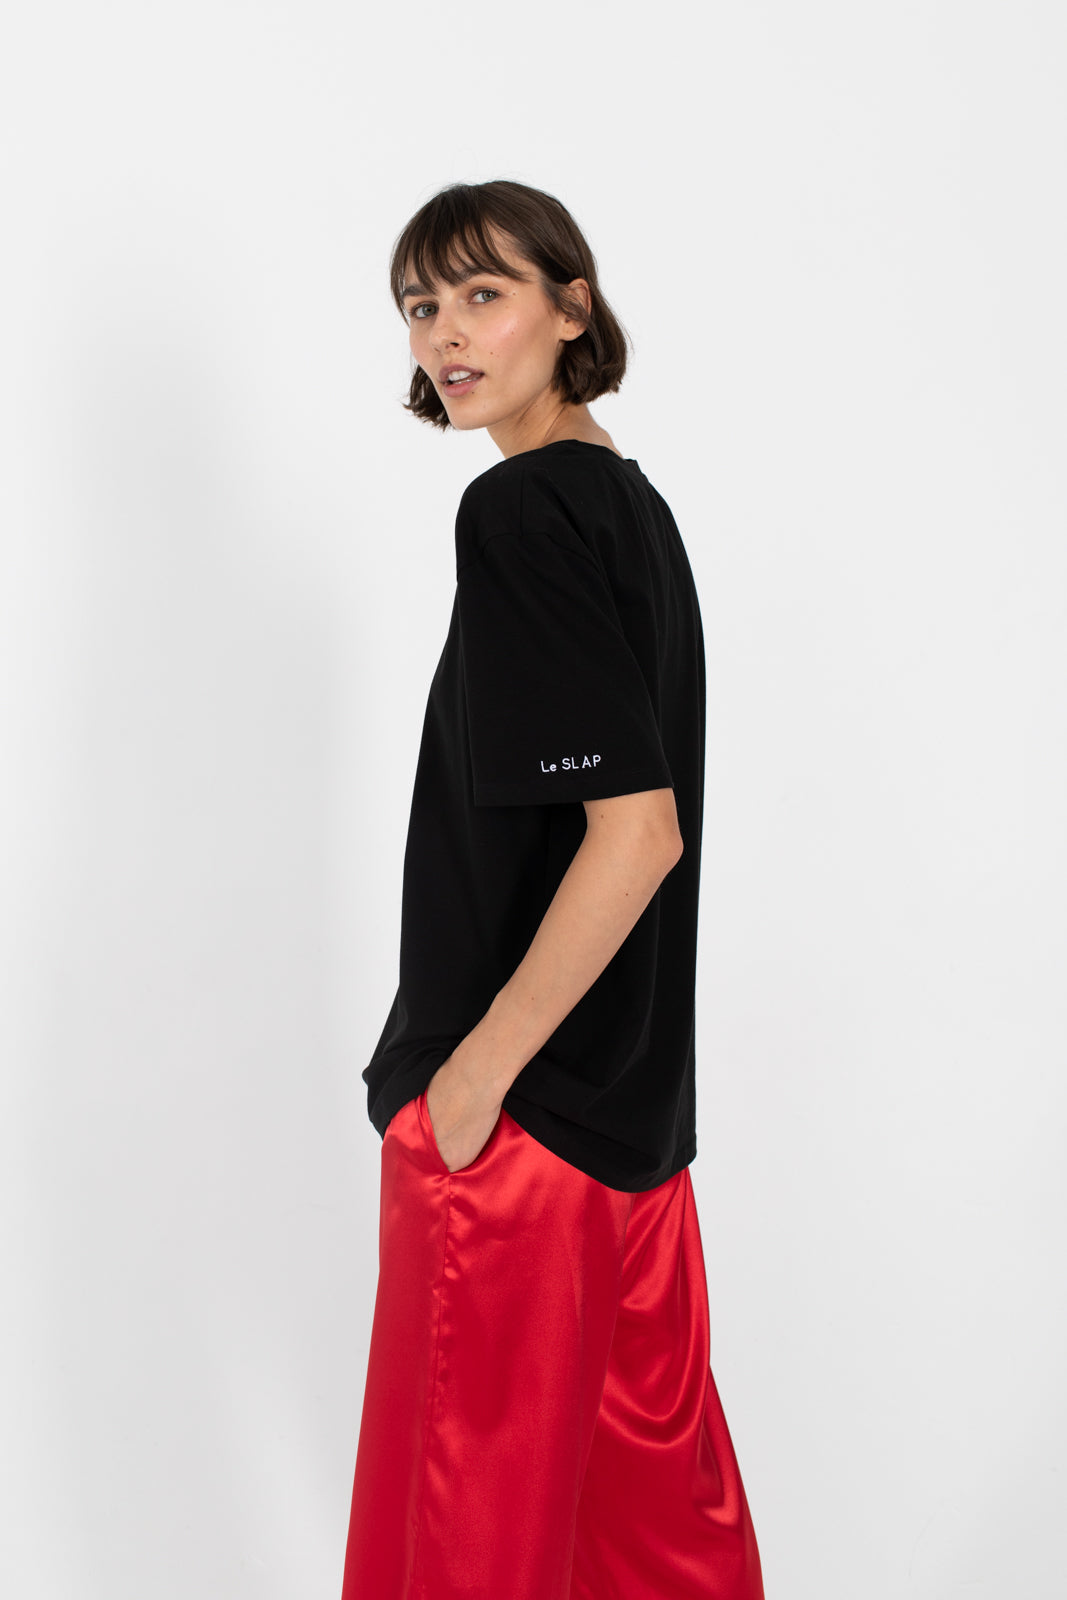 Le SLAP | SHAKESPEARE Black oversize T-shirt